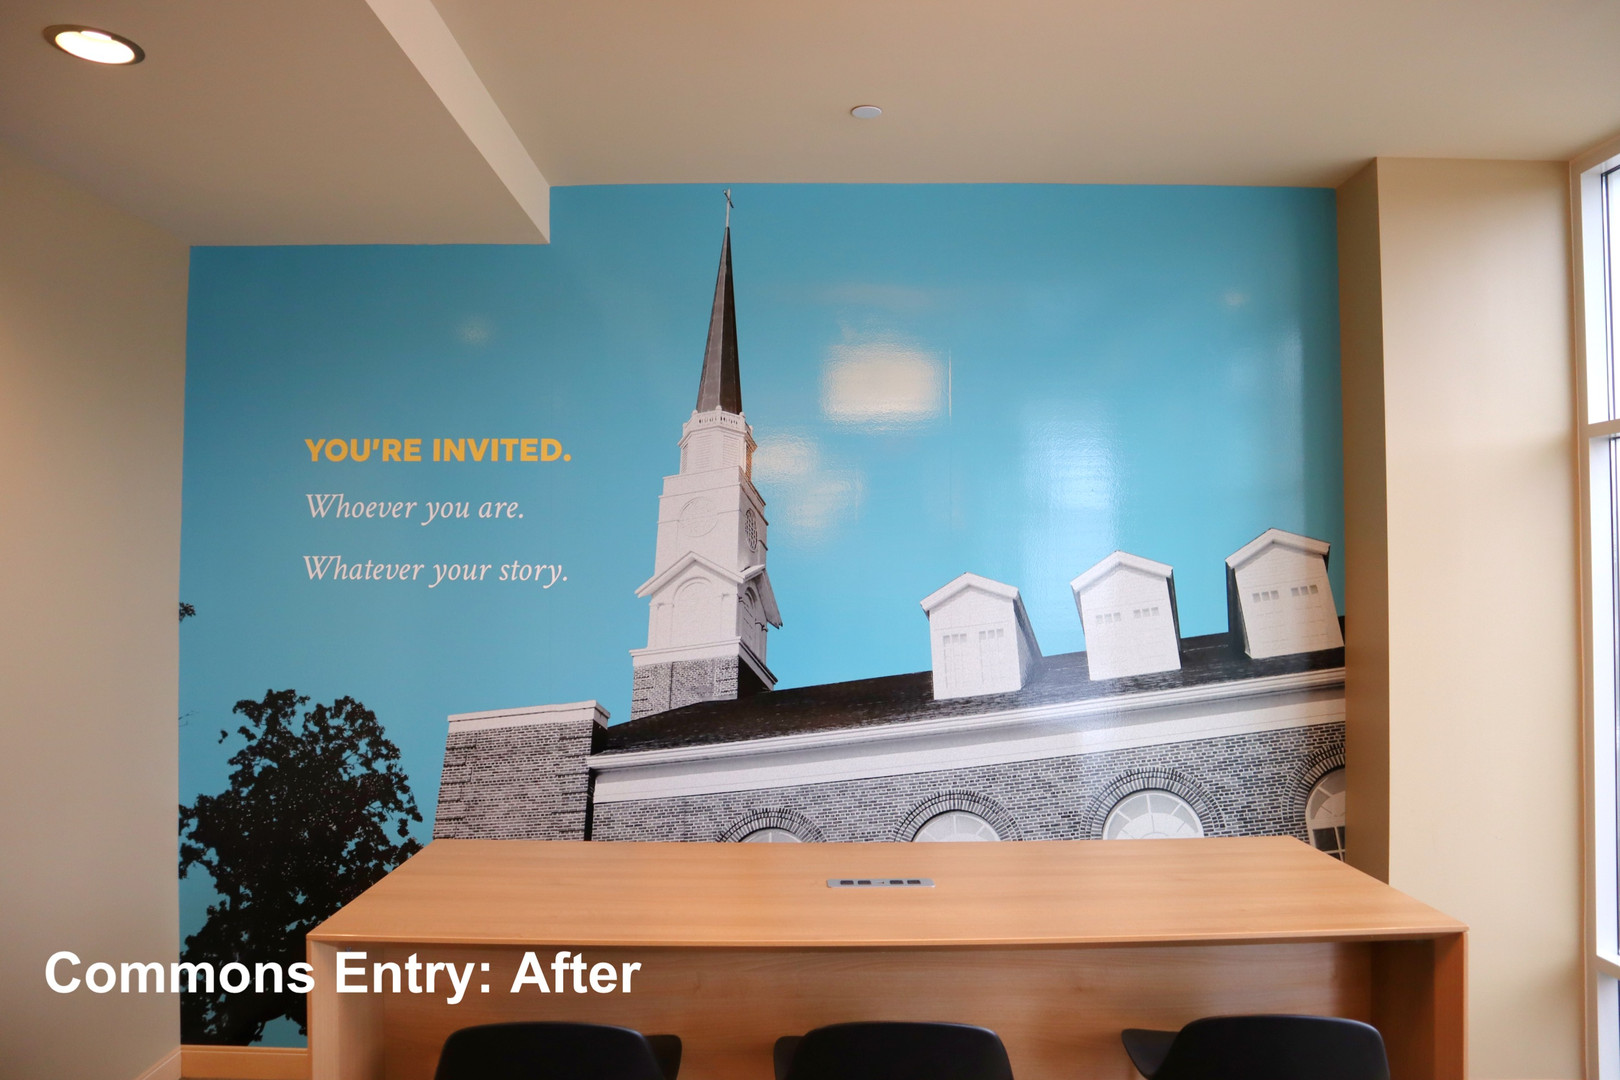 Commons Entry: After